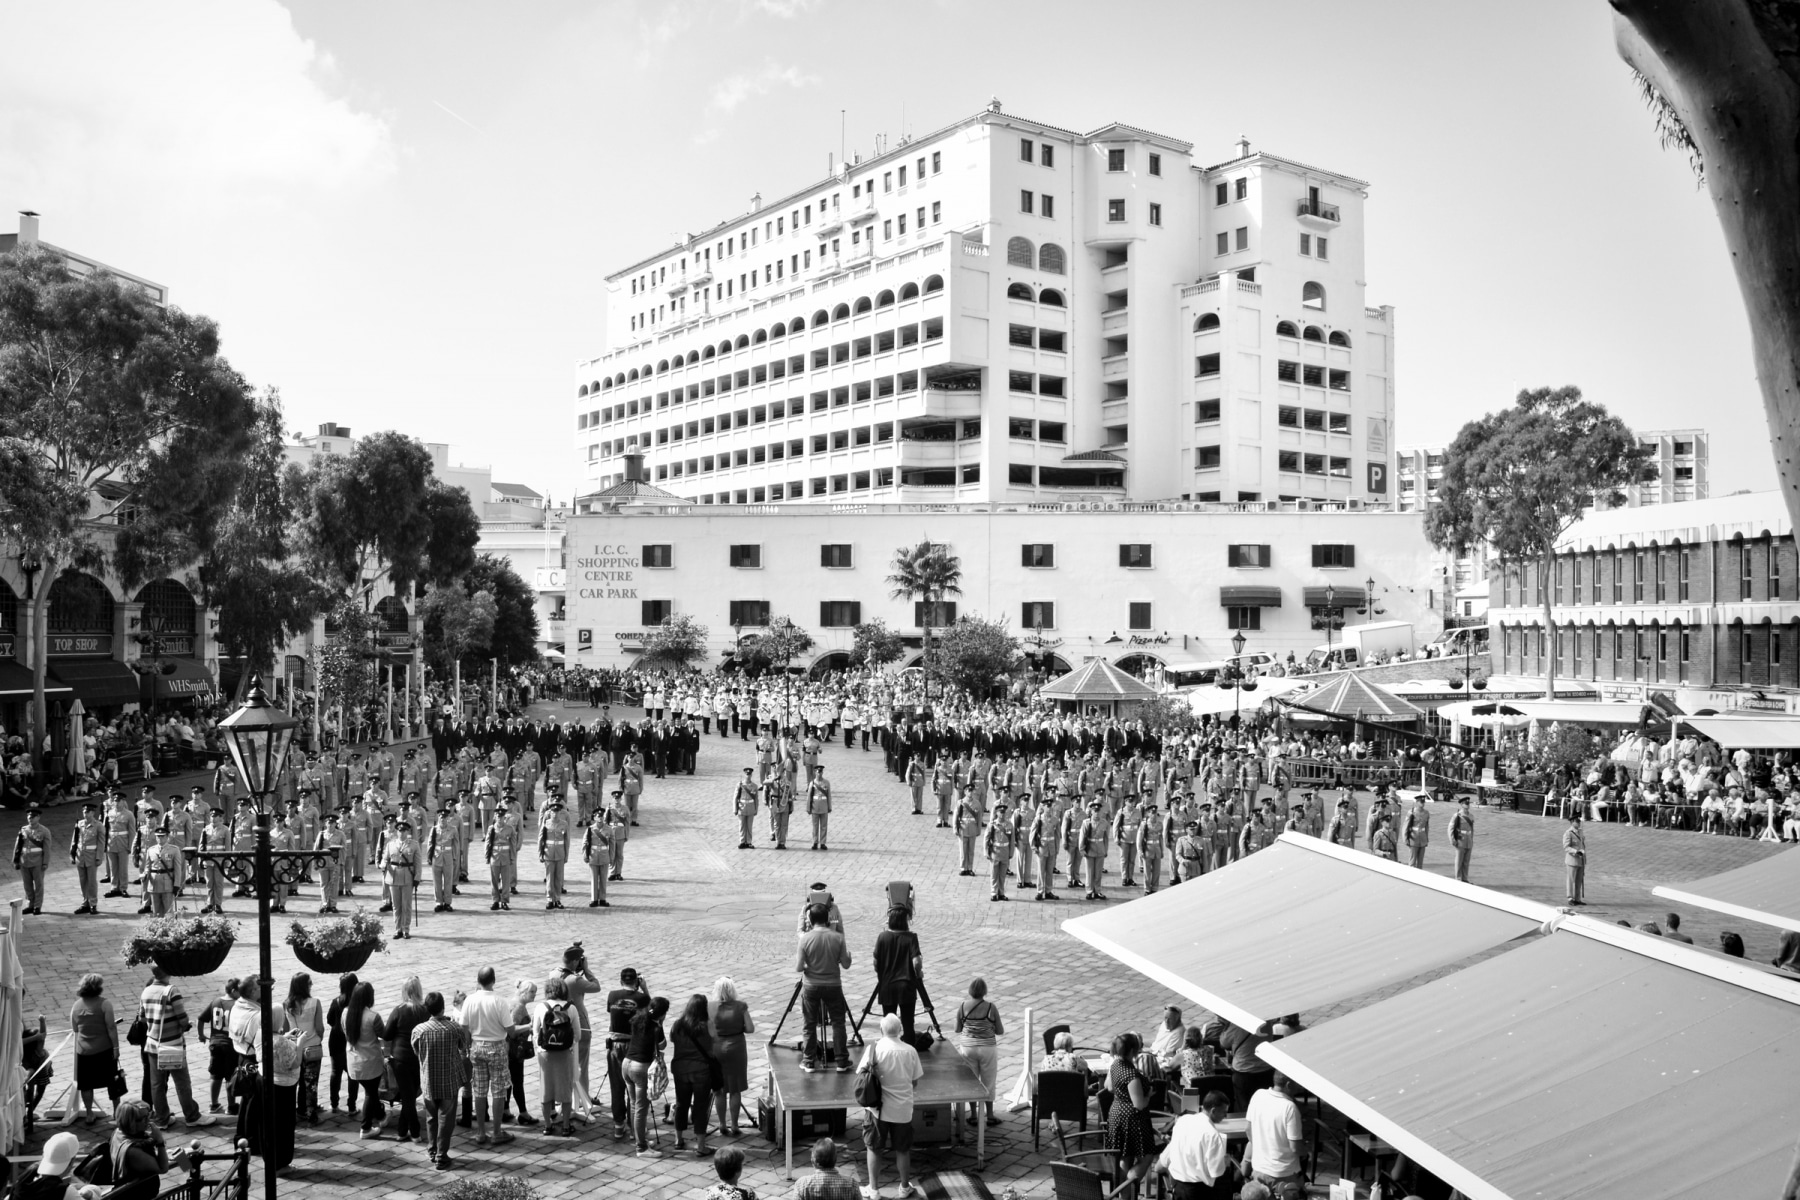 regiment-freedom-of-city-0226-bw_15439621132_o